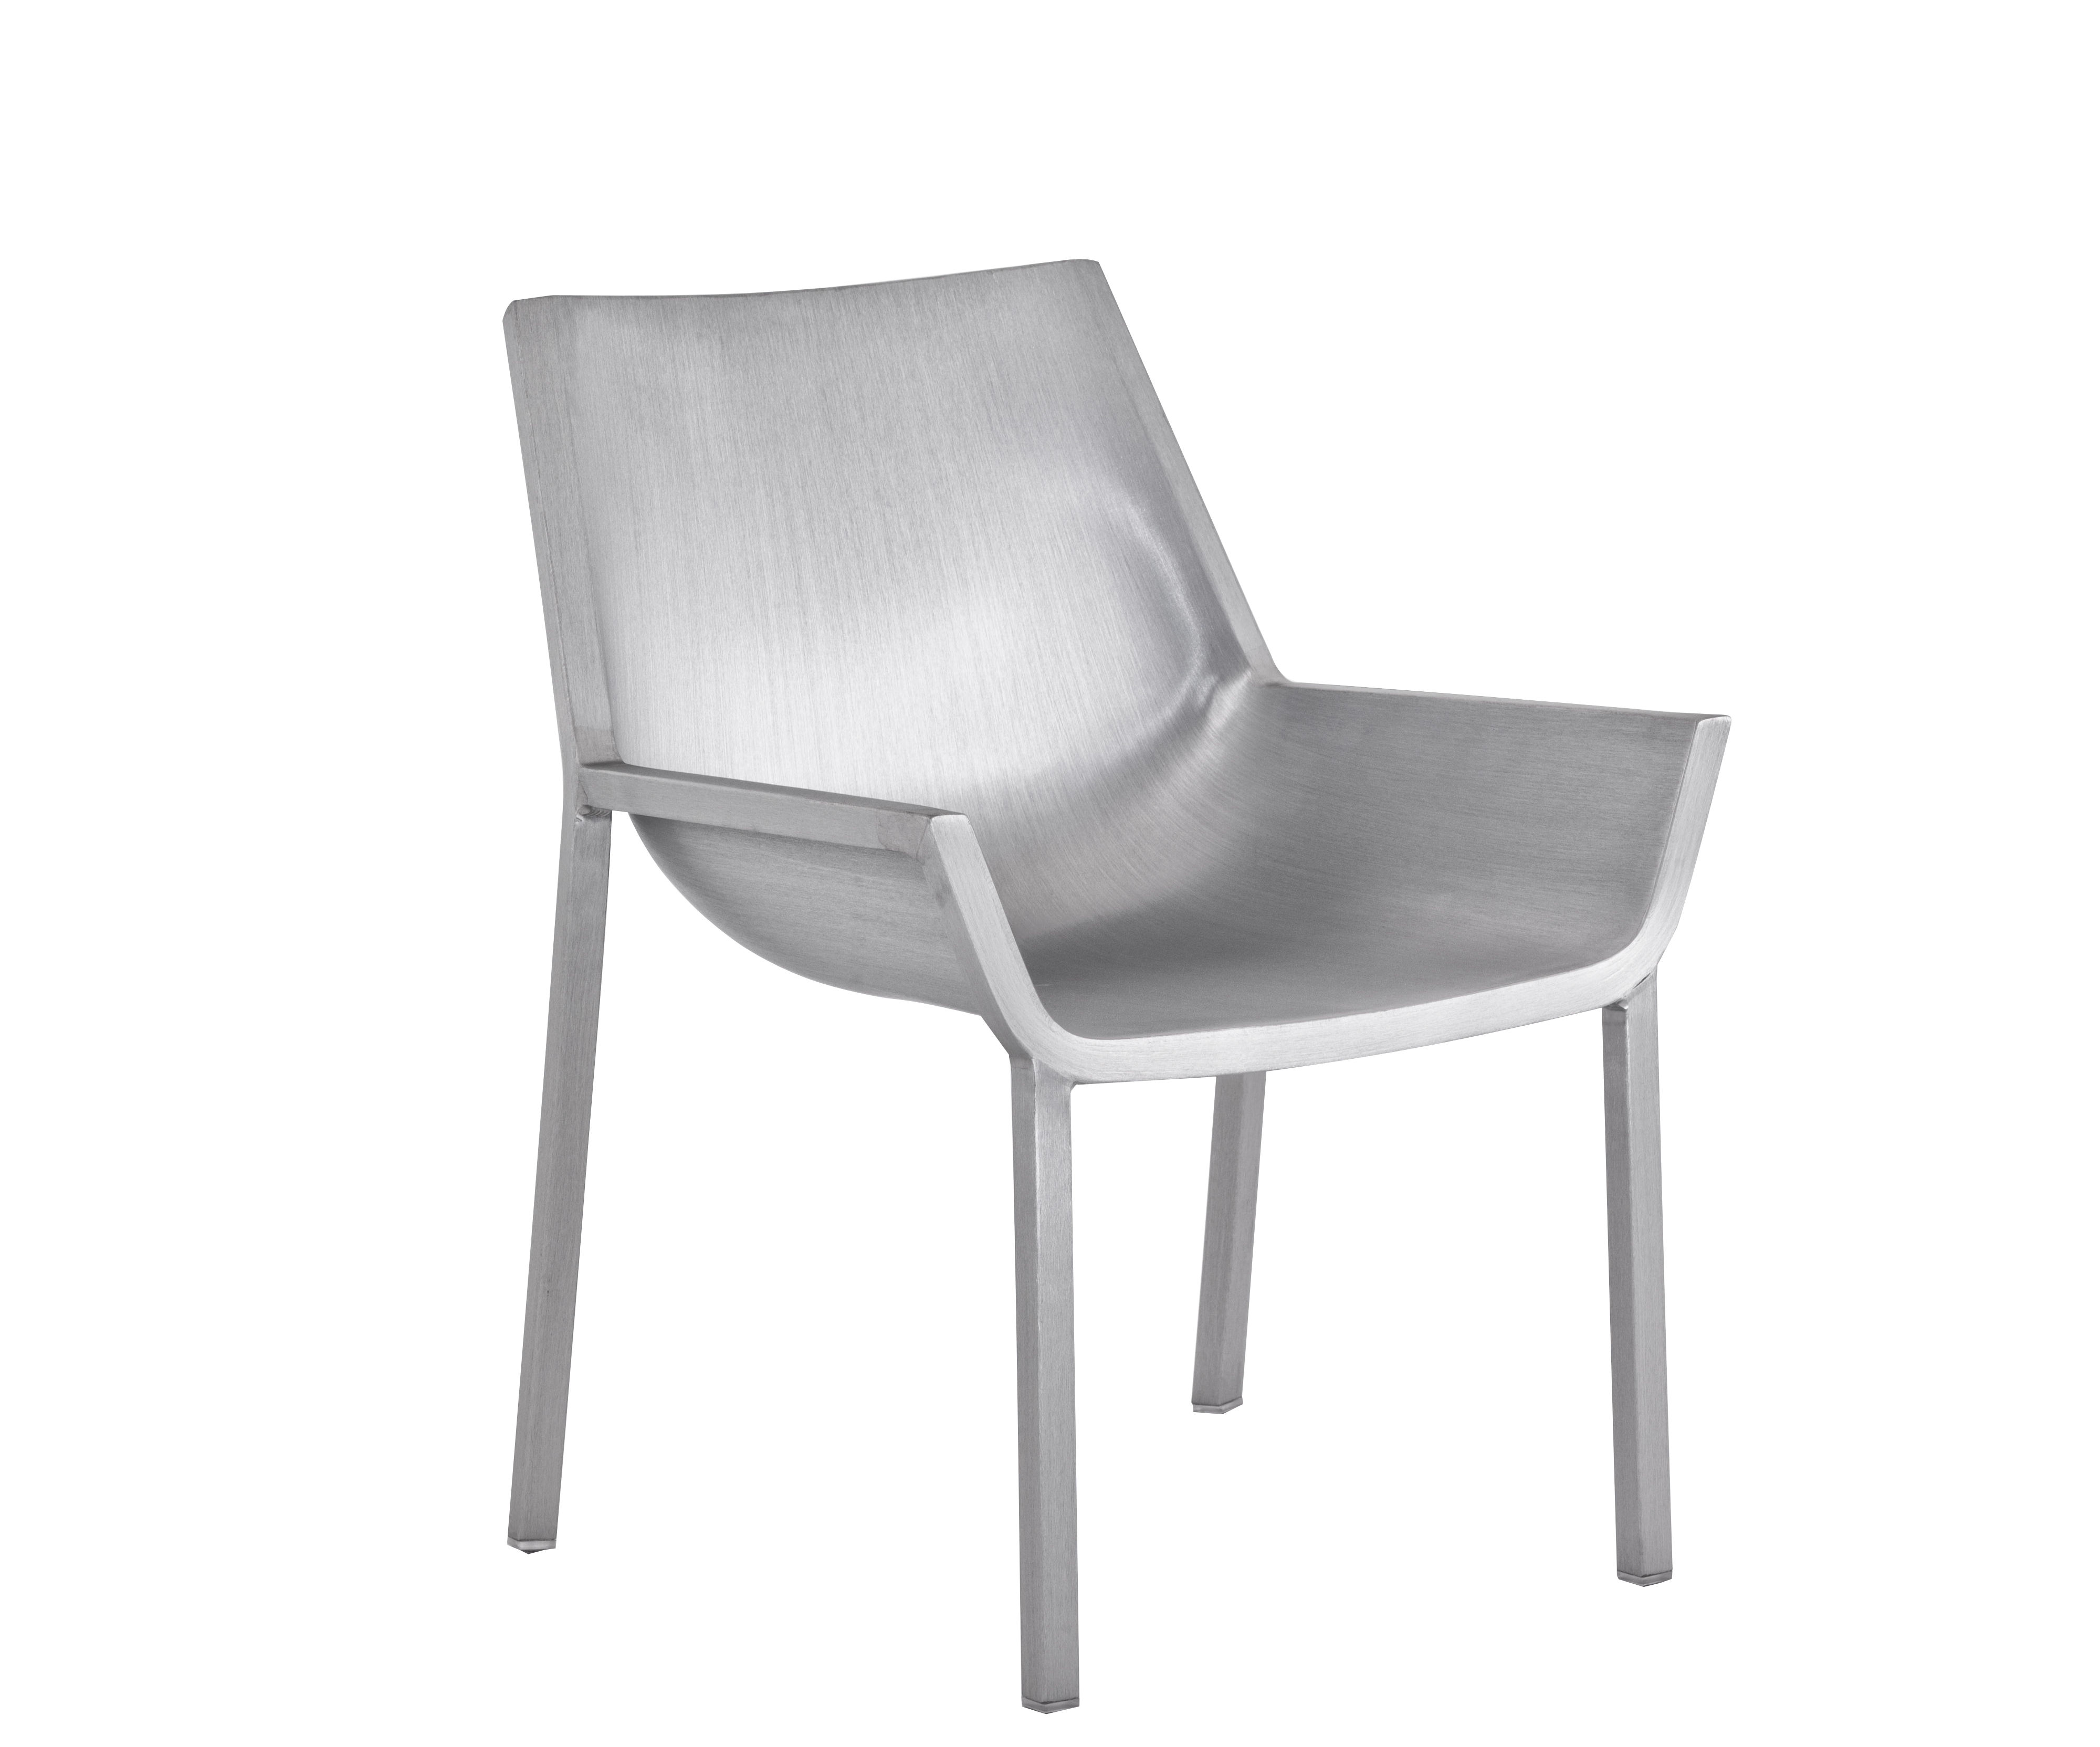 Furniture - Armchairs - Sezz Low armchair by Emeco - Brushed aluminium - Aluminium recyclé finition brossé